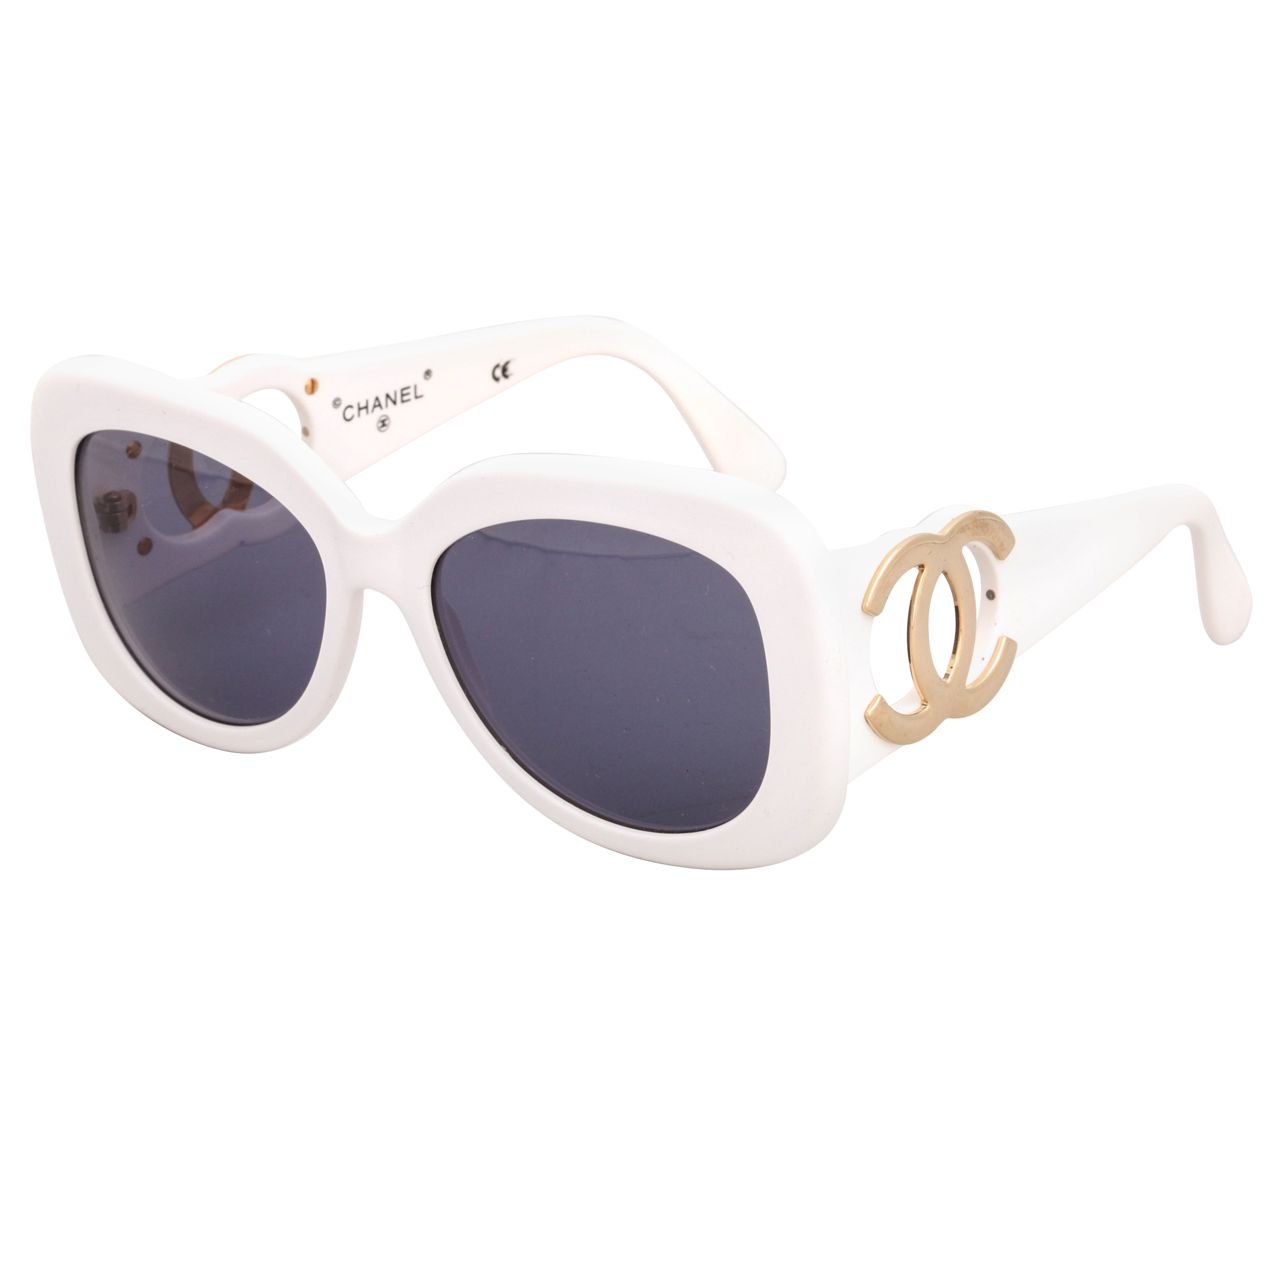 85ac2e32de7 Chanel White Sunglasses with Gold CC